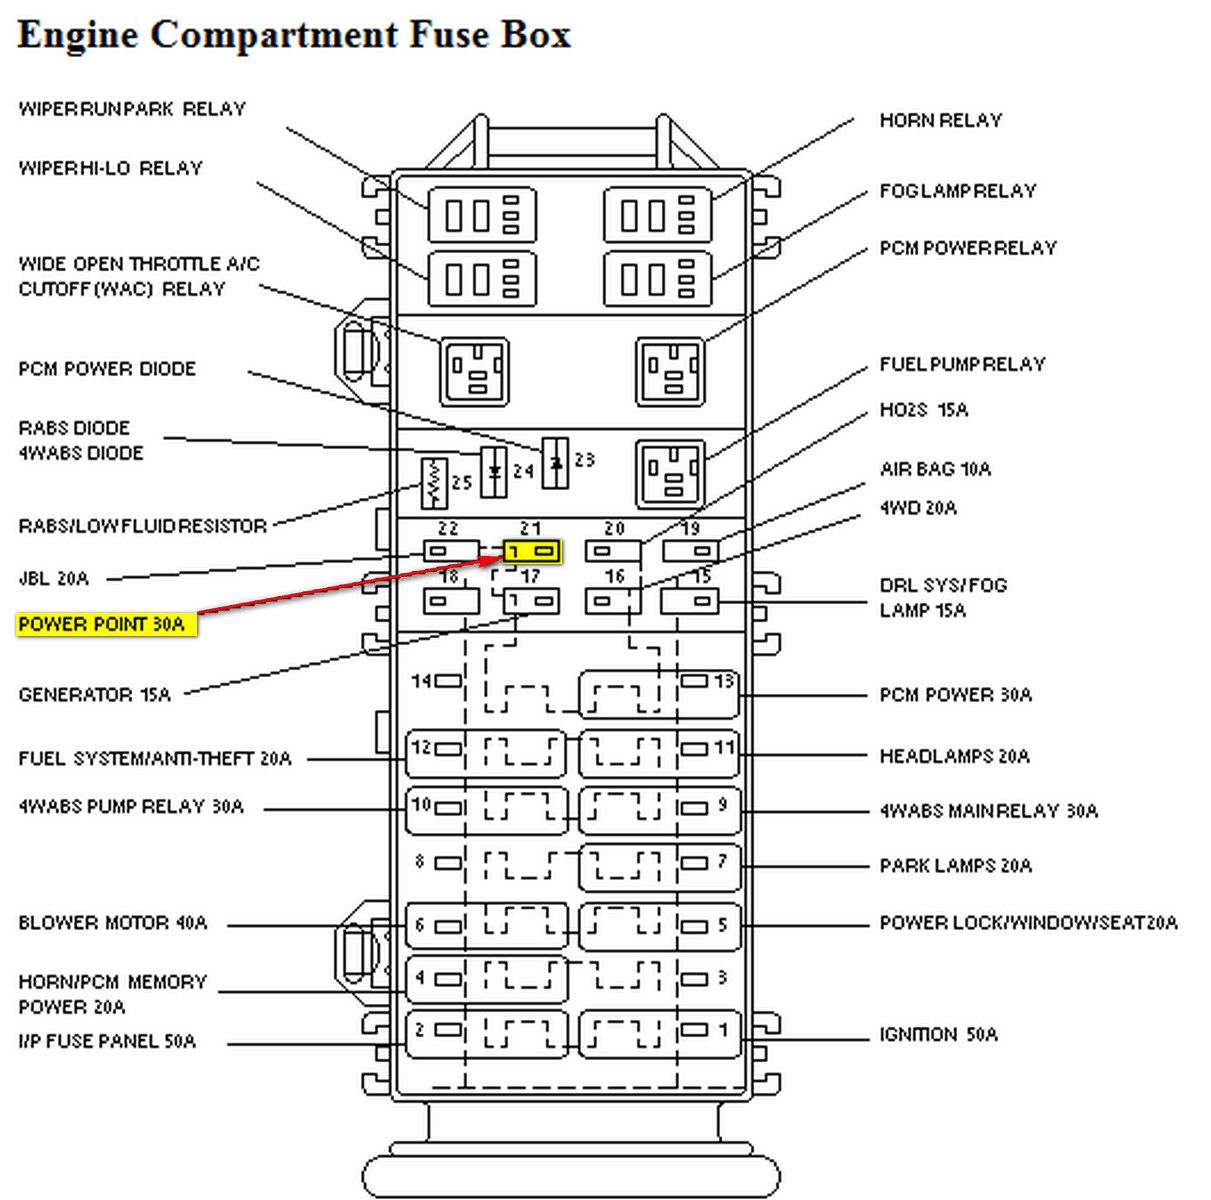 hight resolution of 96 ford ranger fuse diagram wiring diagram sheet 2002 ford ranger fuse diagram 1997 ford ranger